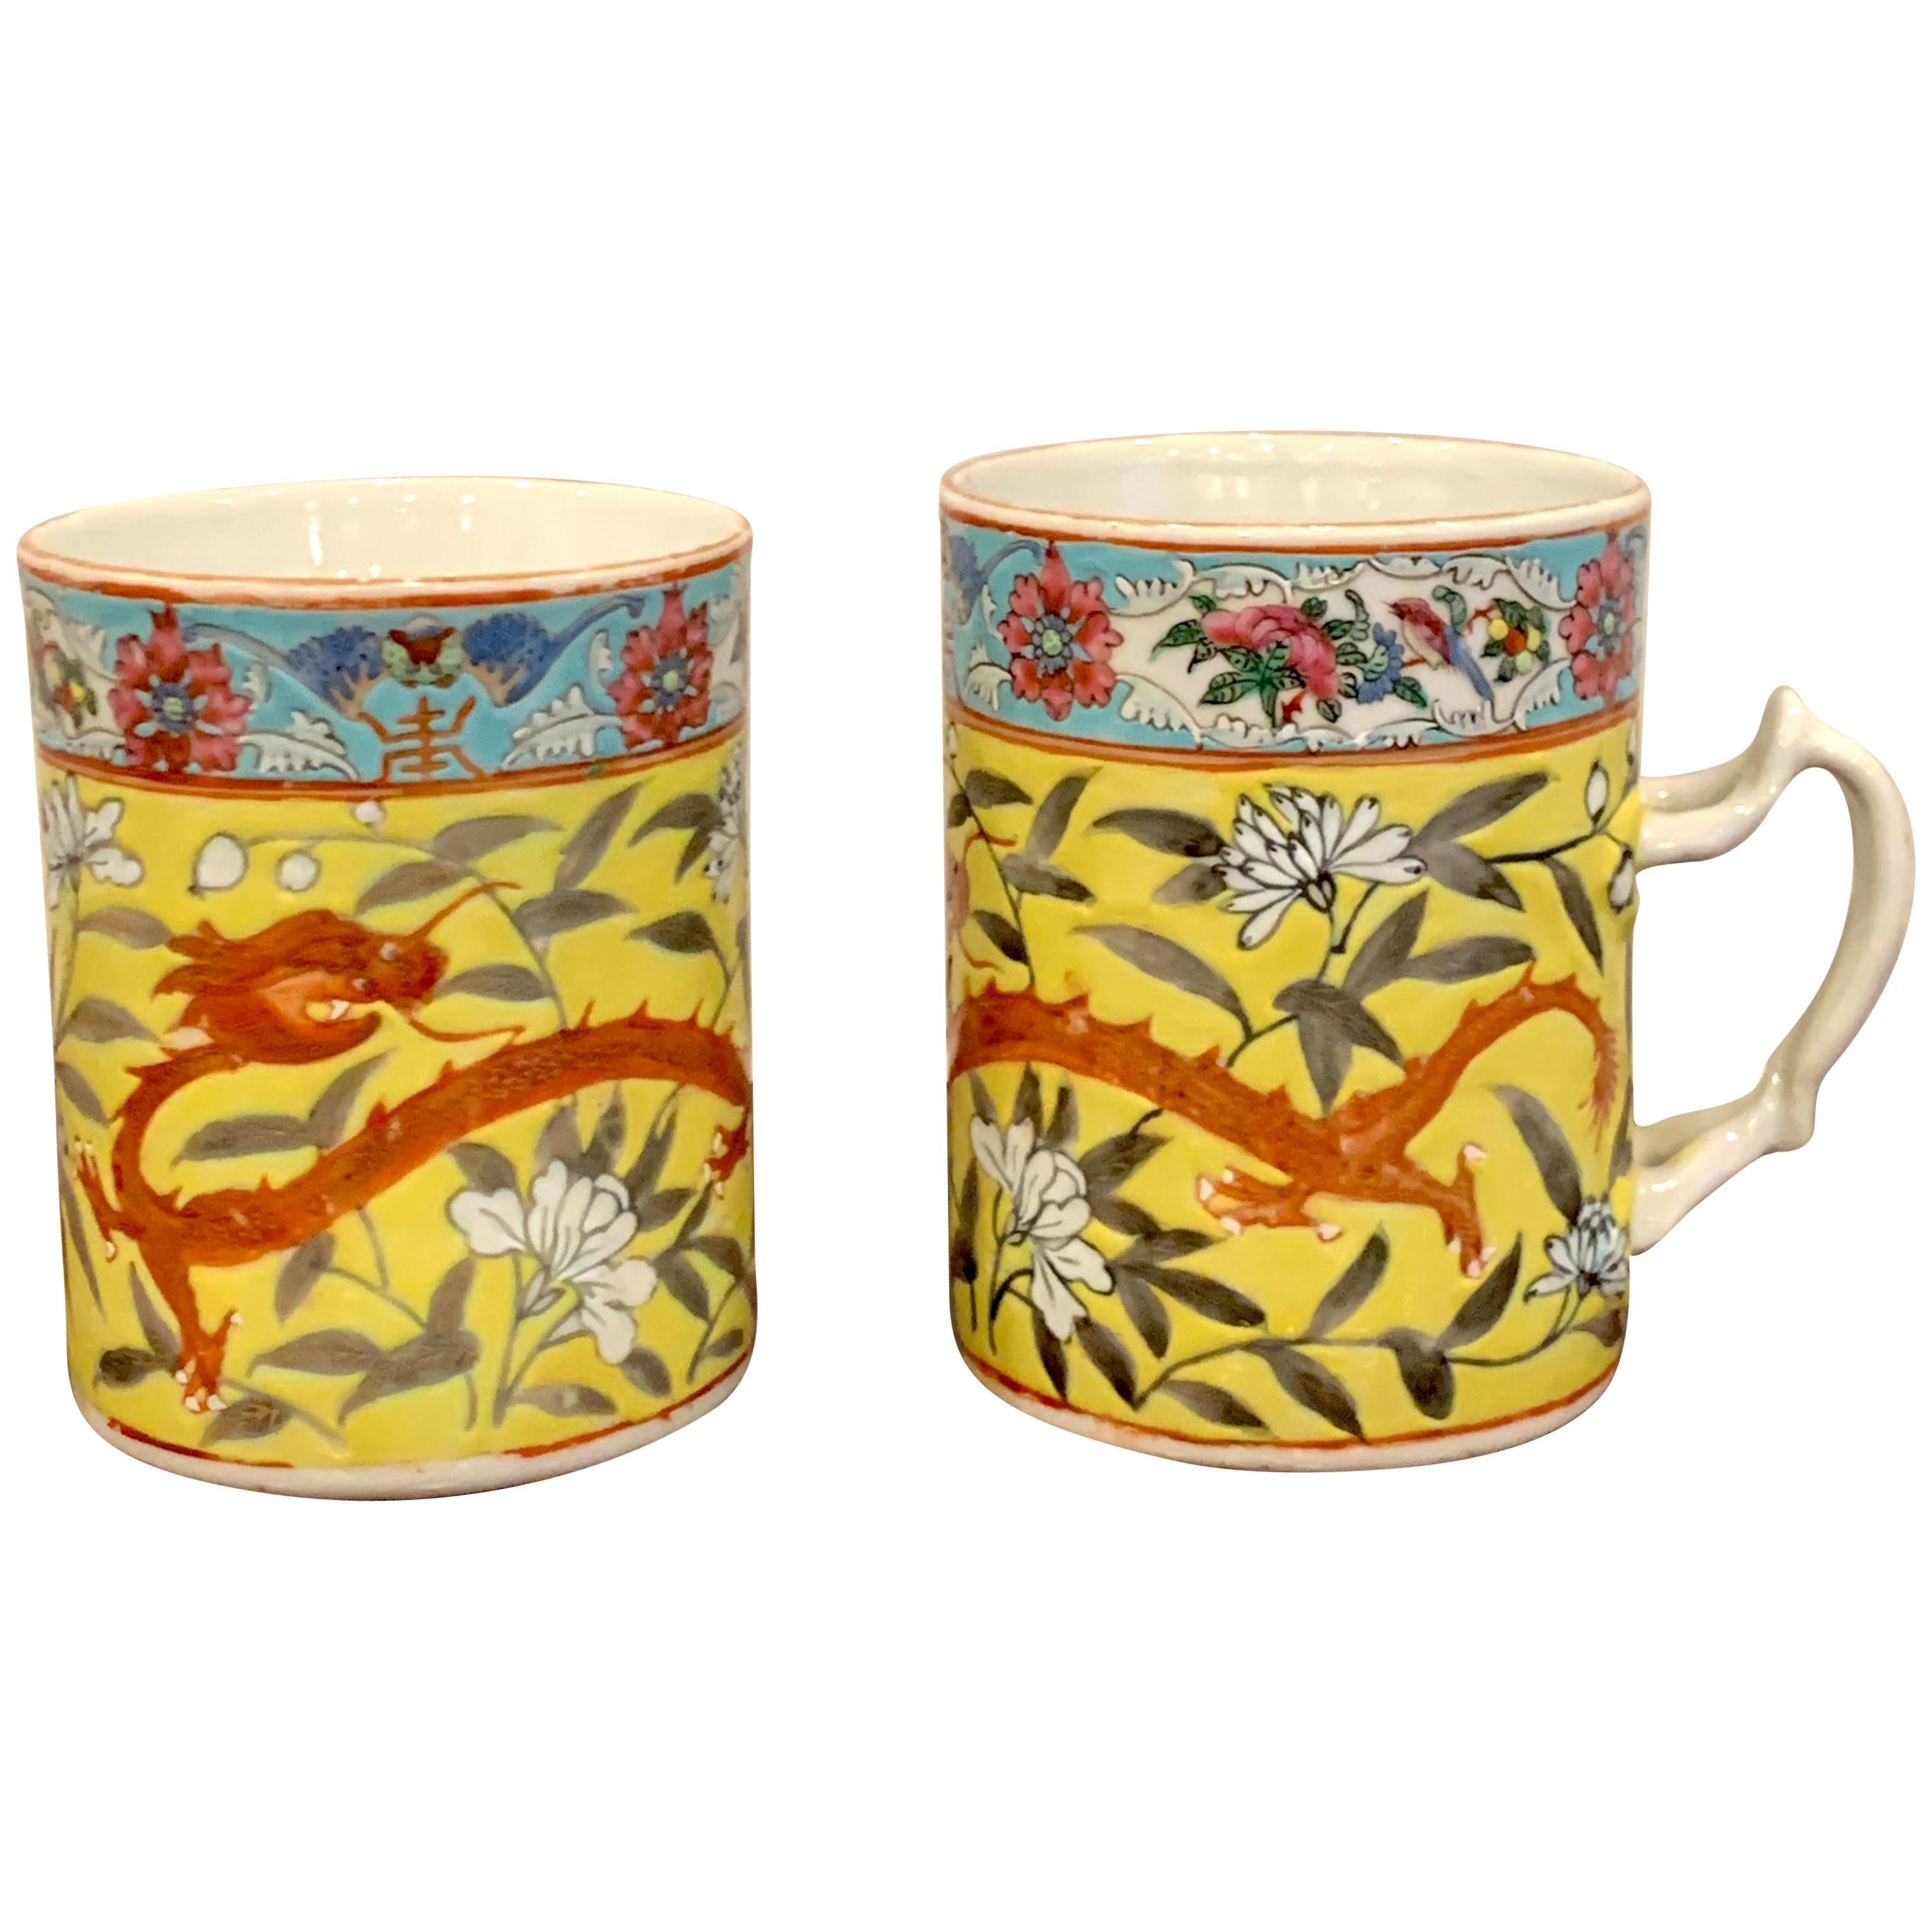 Pair of 19th Century Chinese Export Famille Verte Yellow Dragon Motif Mugs